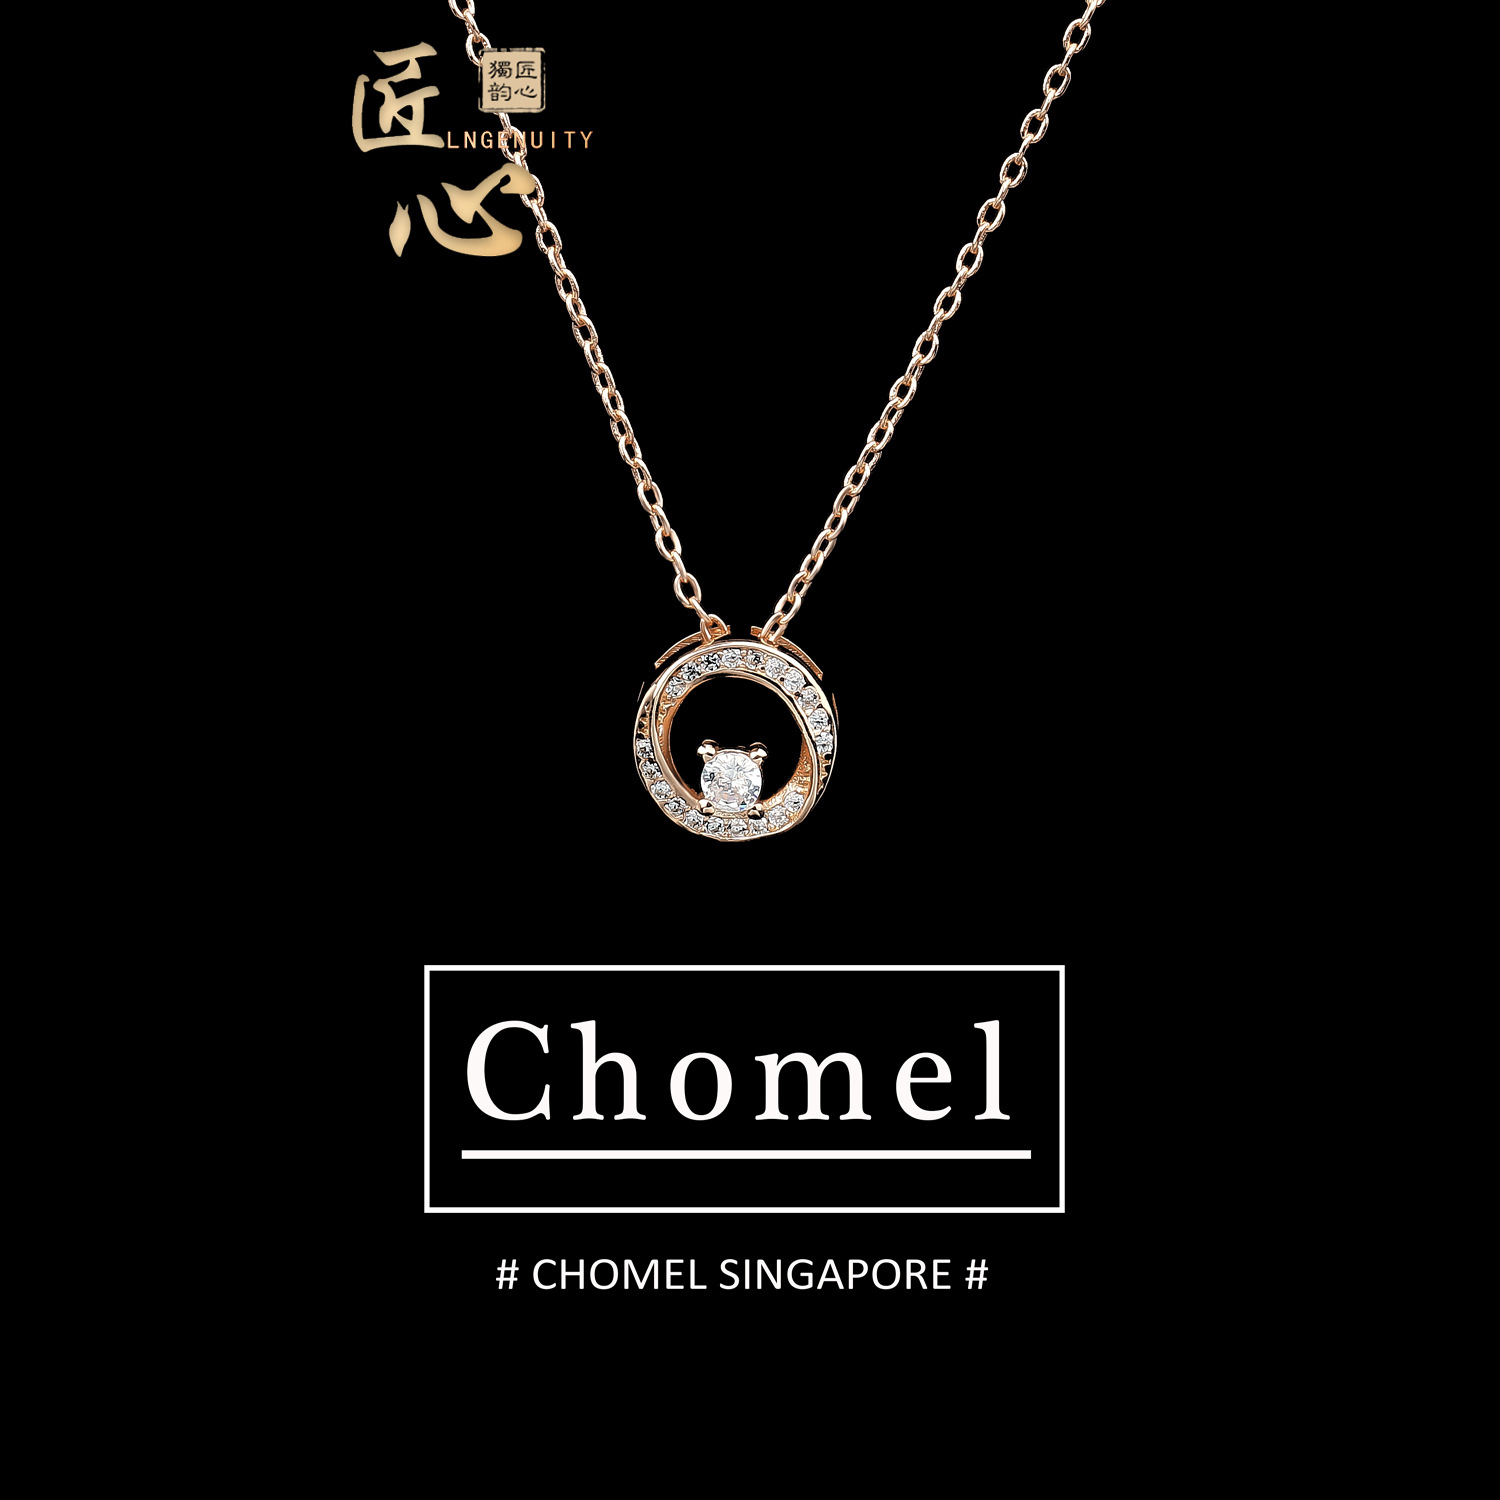 Singapore chomel niche brand design Necklace womens fashion creativity Mobius ring diamond personalized clavicle chain